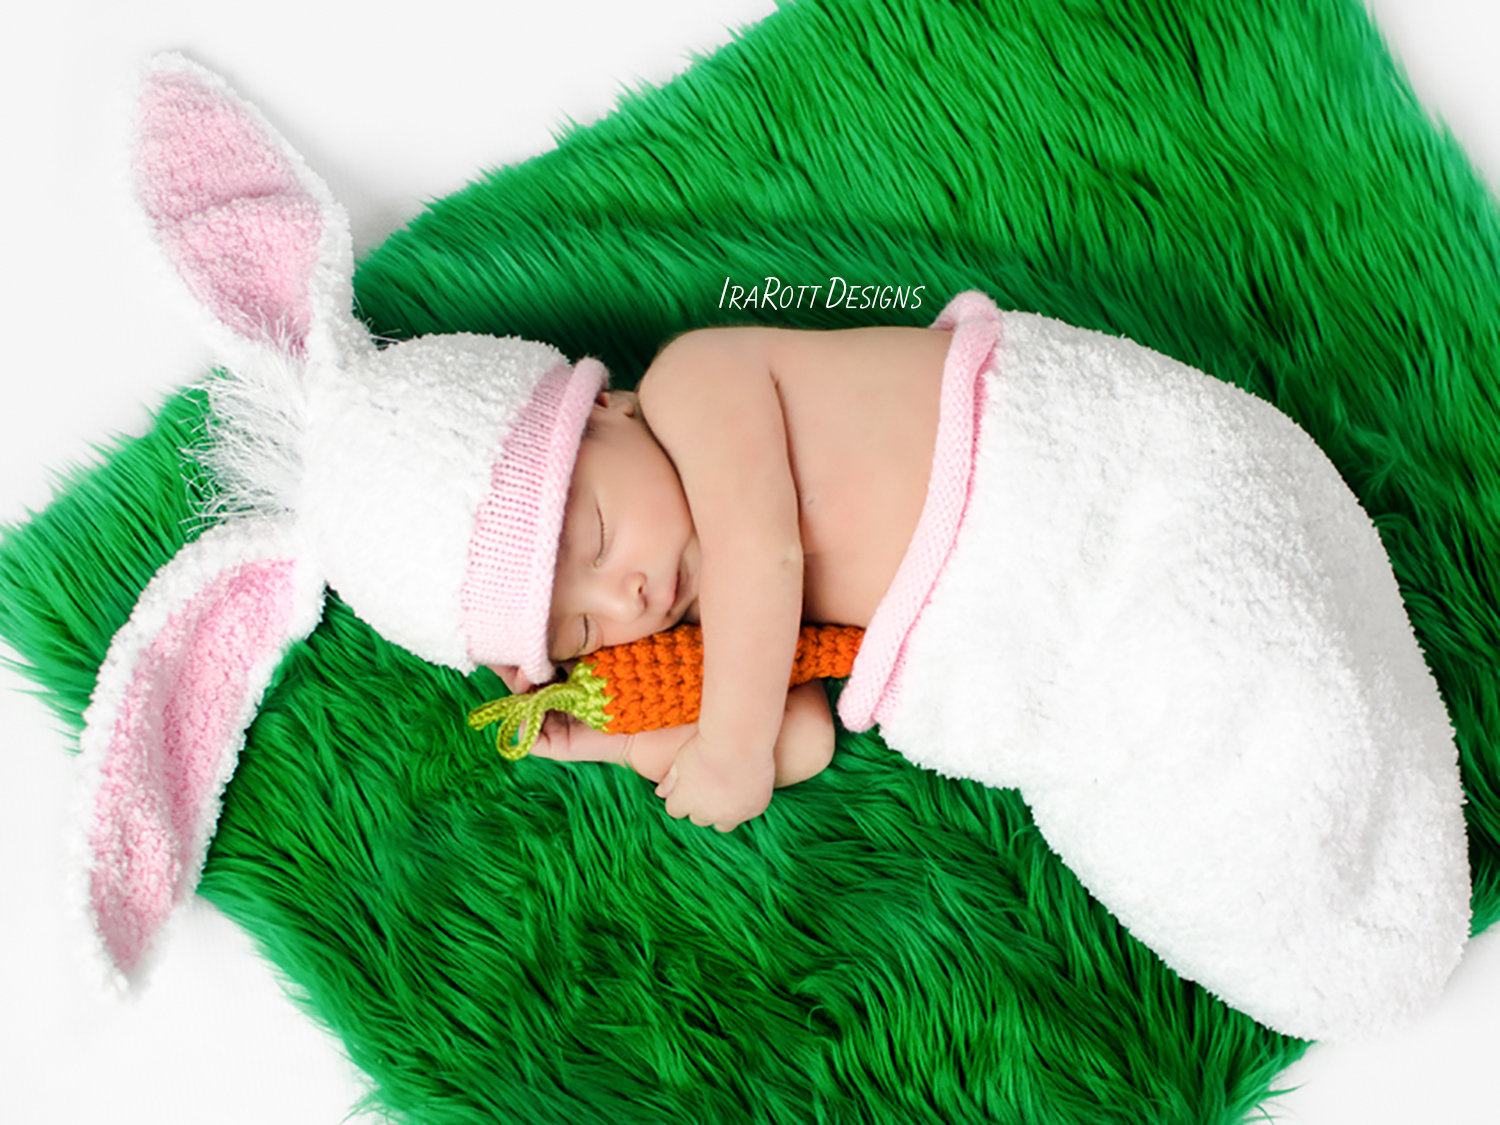 Baby Bunny Animal Hat and Cocoon Photo Prop Set with Carrot Knit Pattern by IraRott